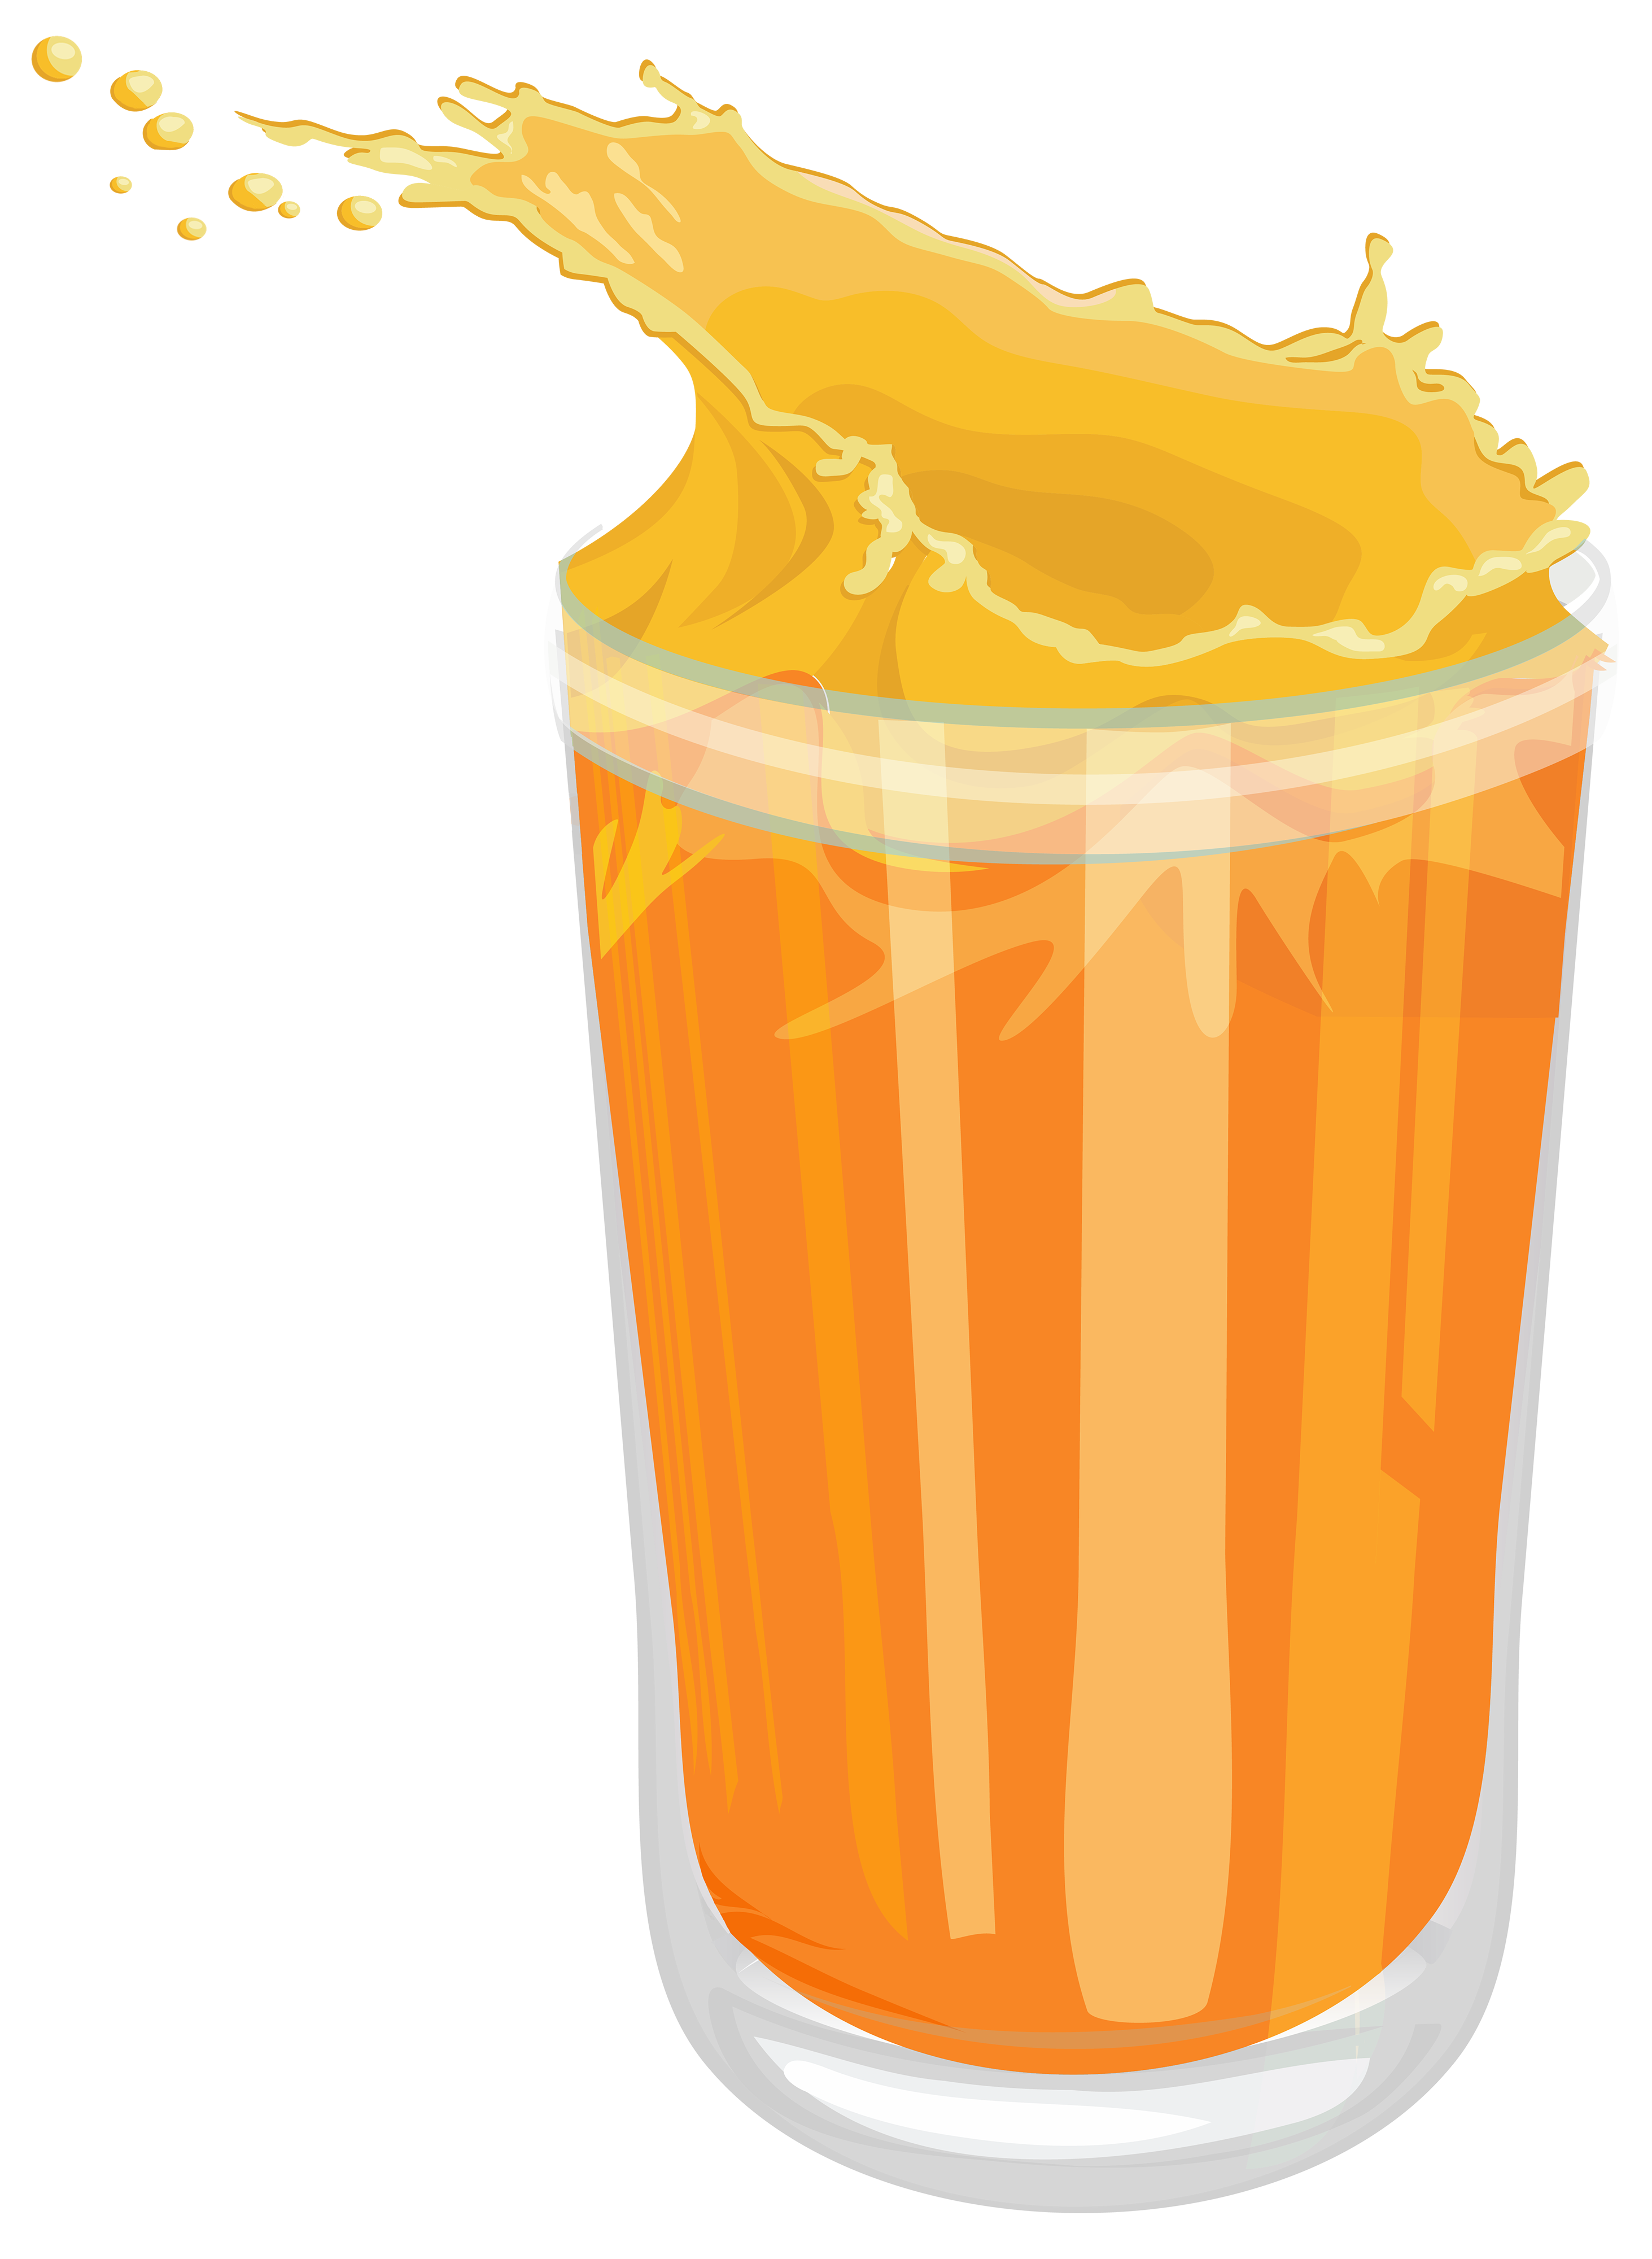 Juice Png image #39493